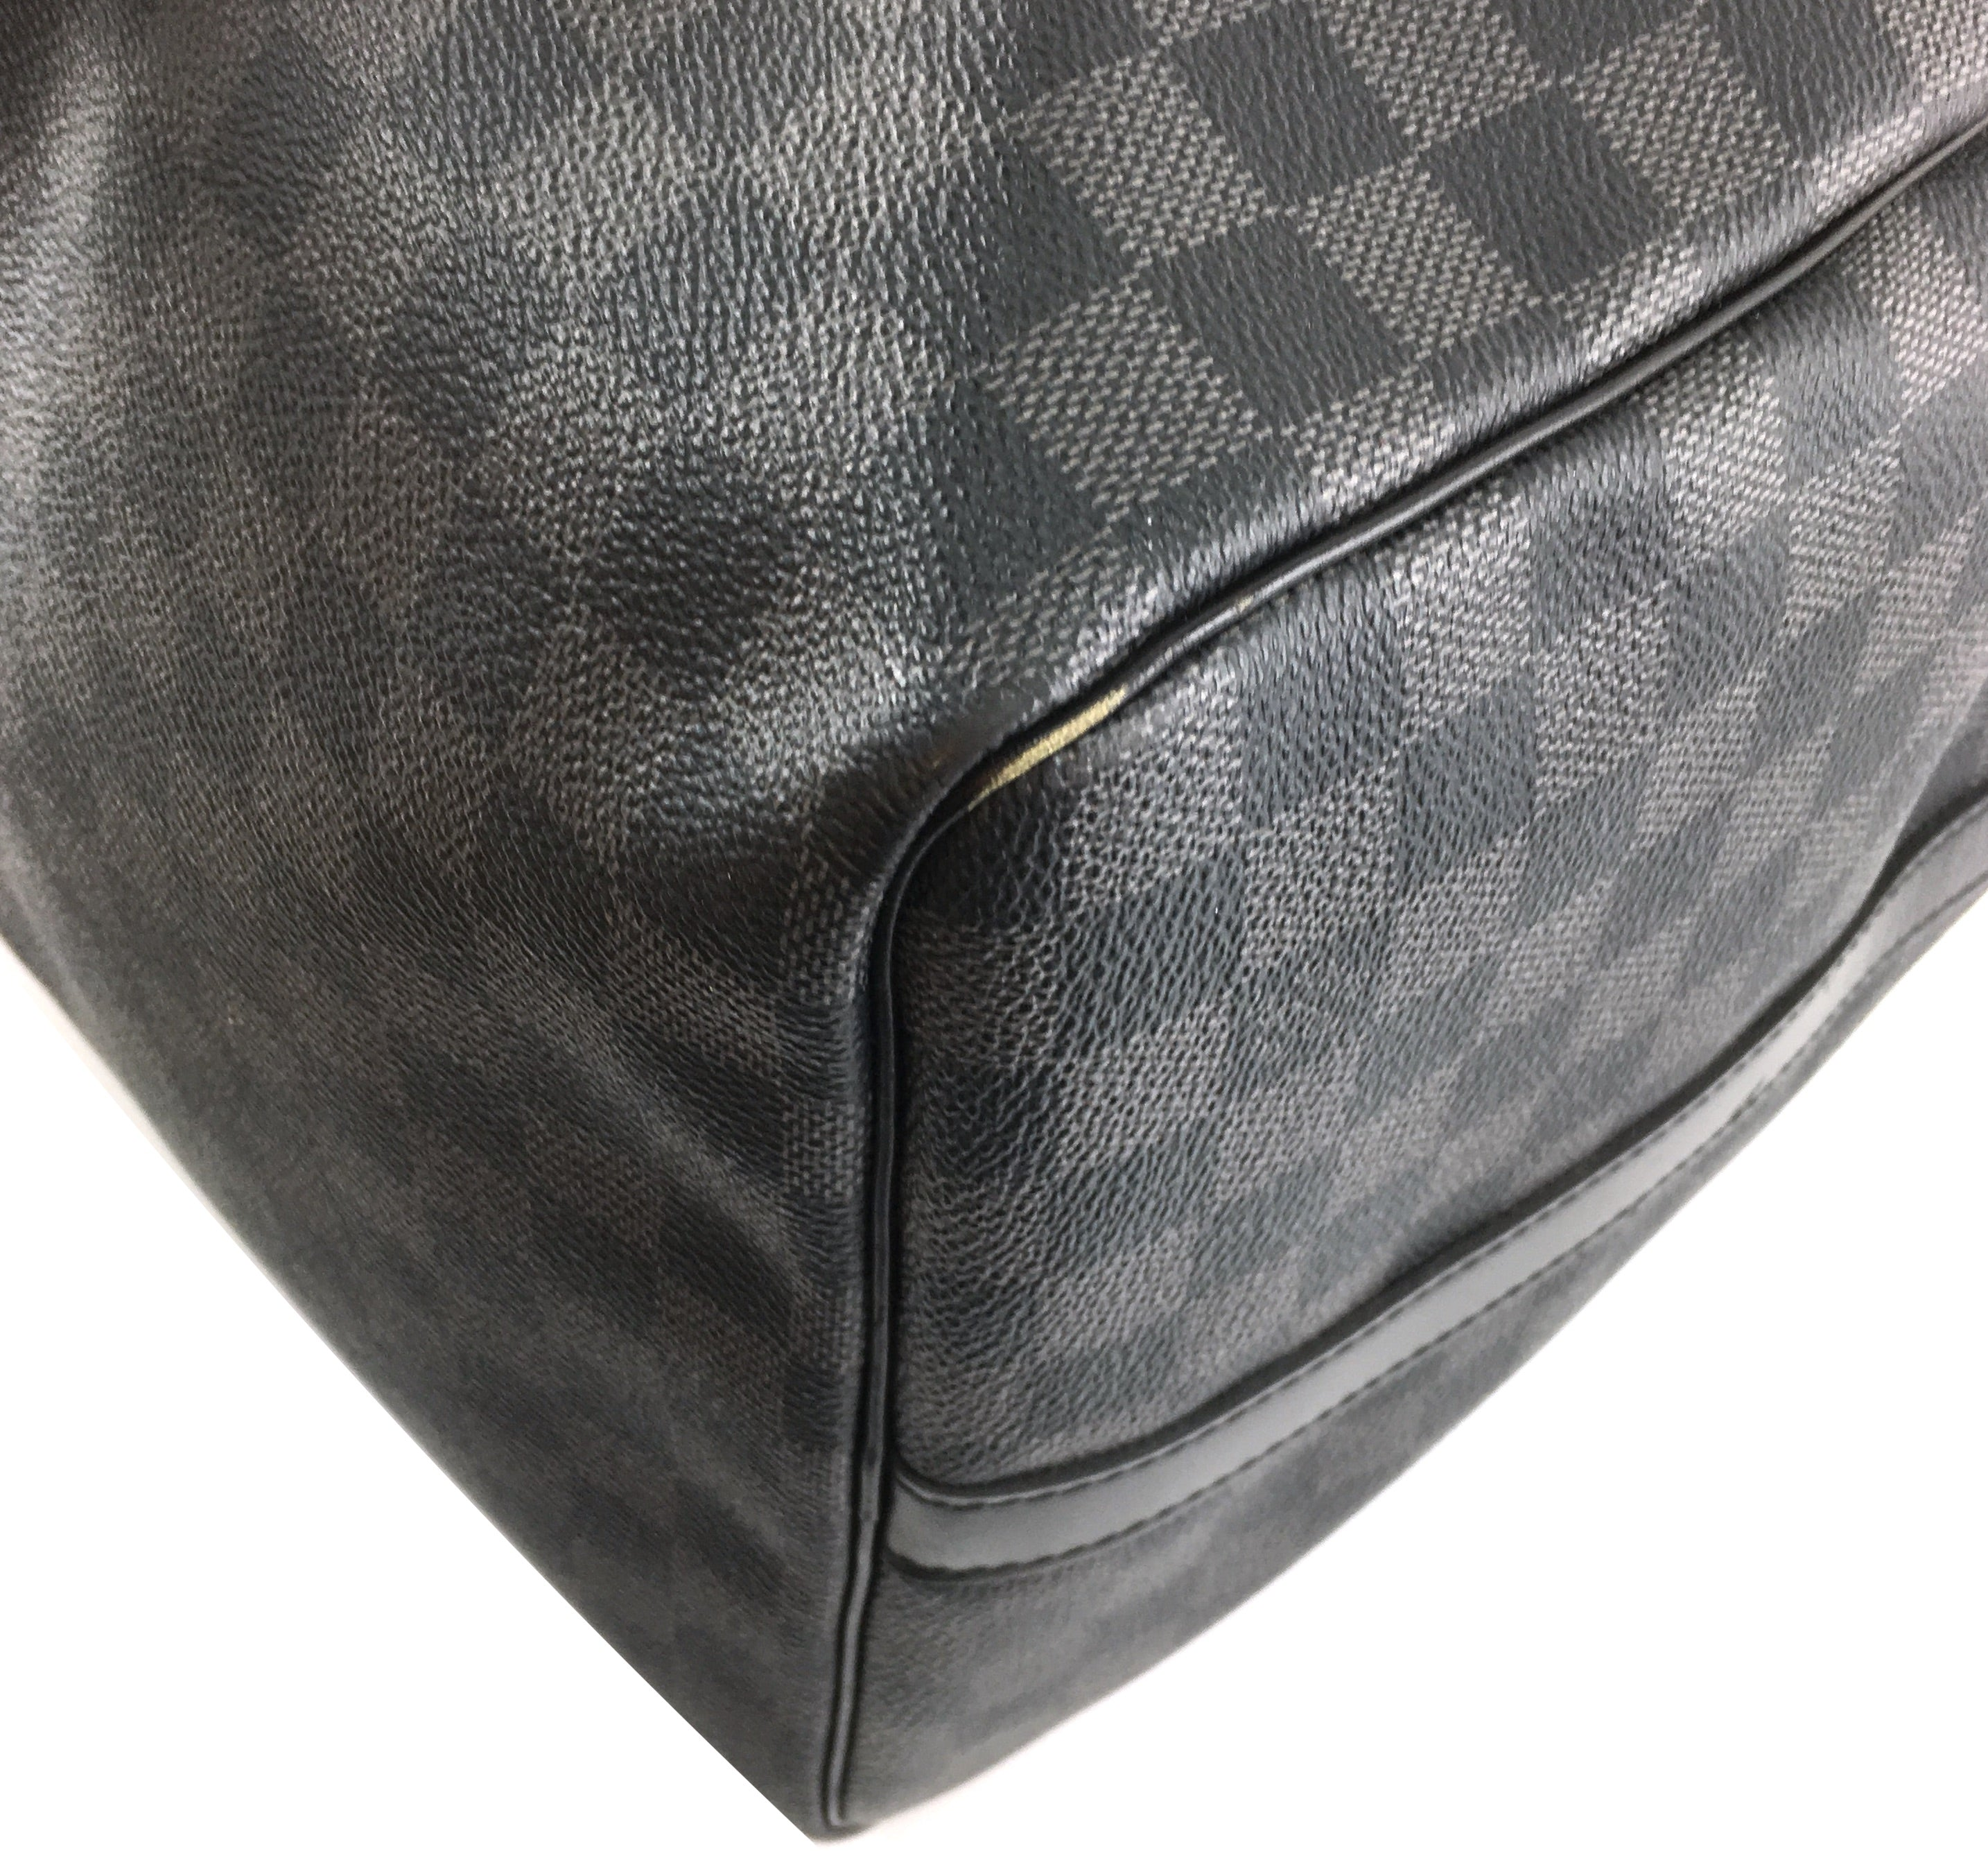 Louis Vuitton Keepall Bandouliere 55 Damier Graphite Canvas